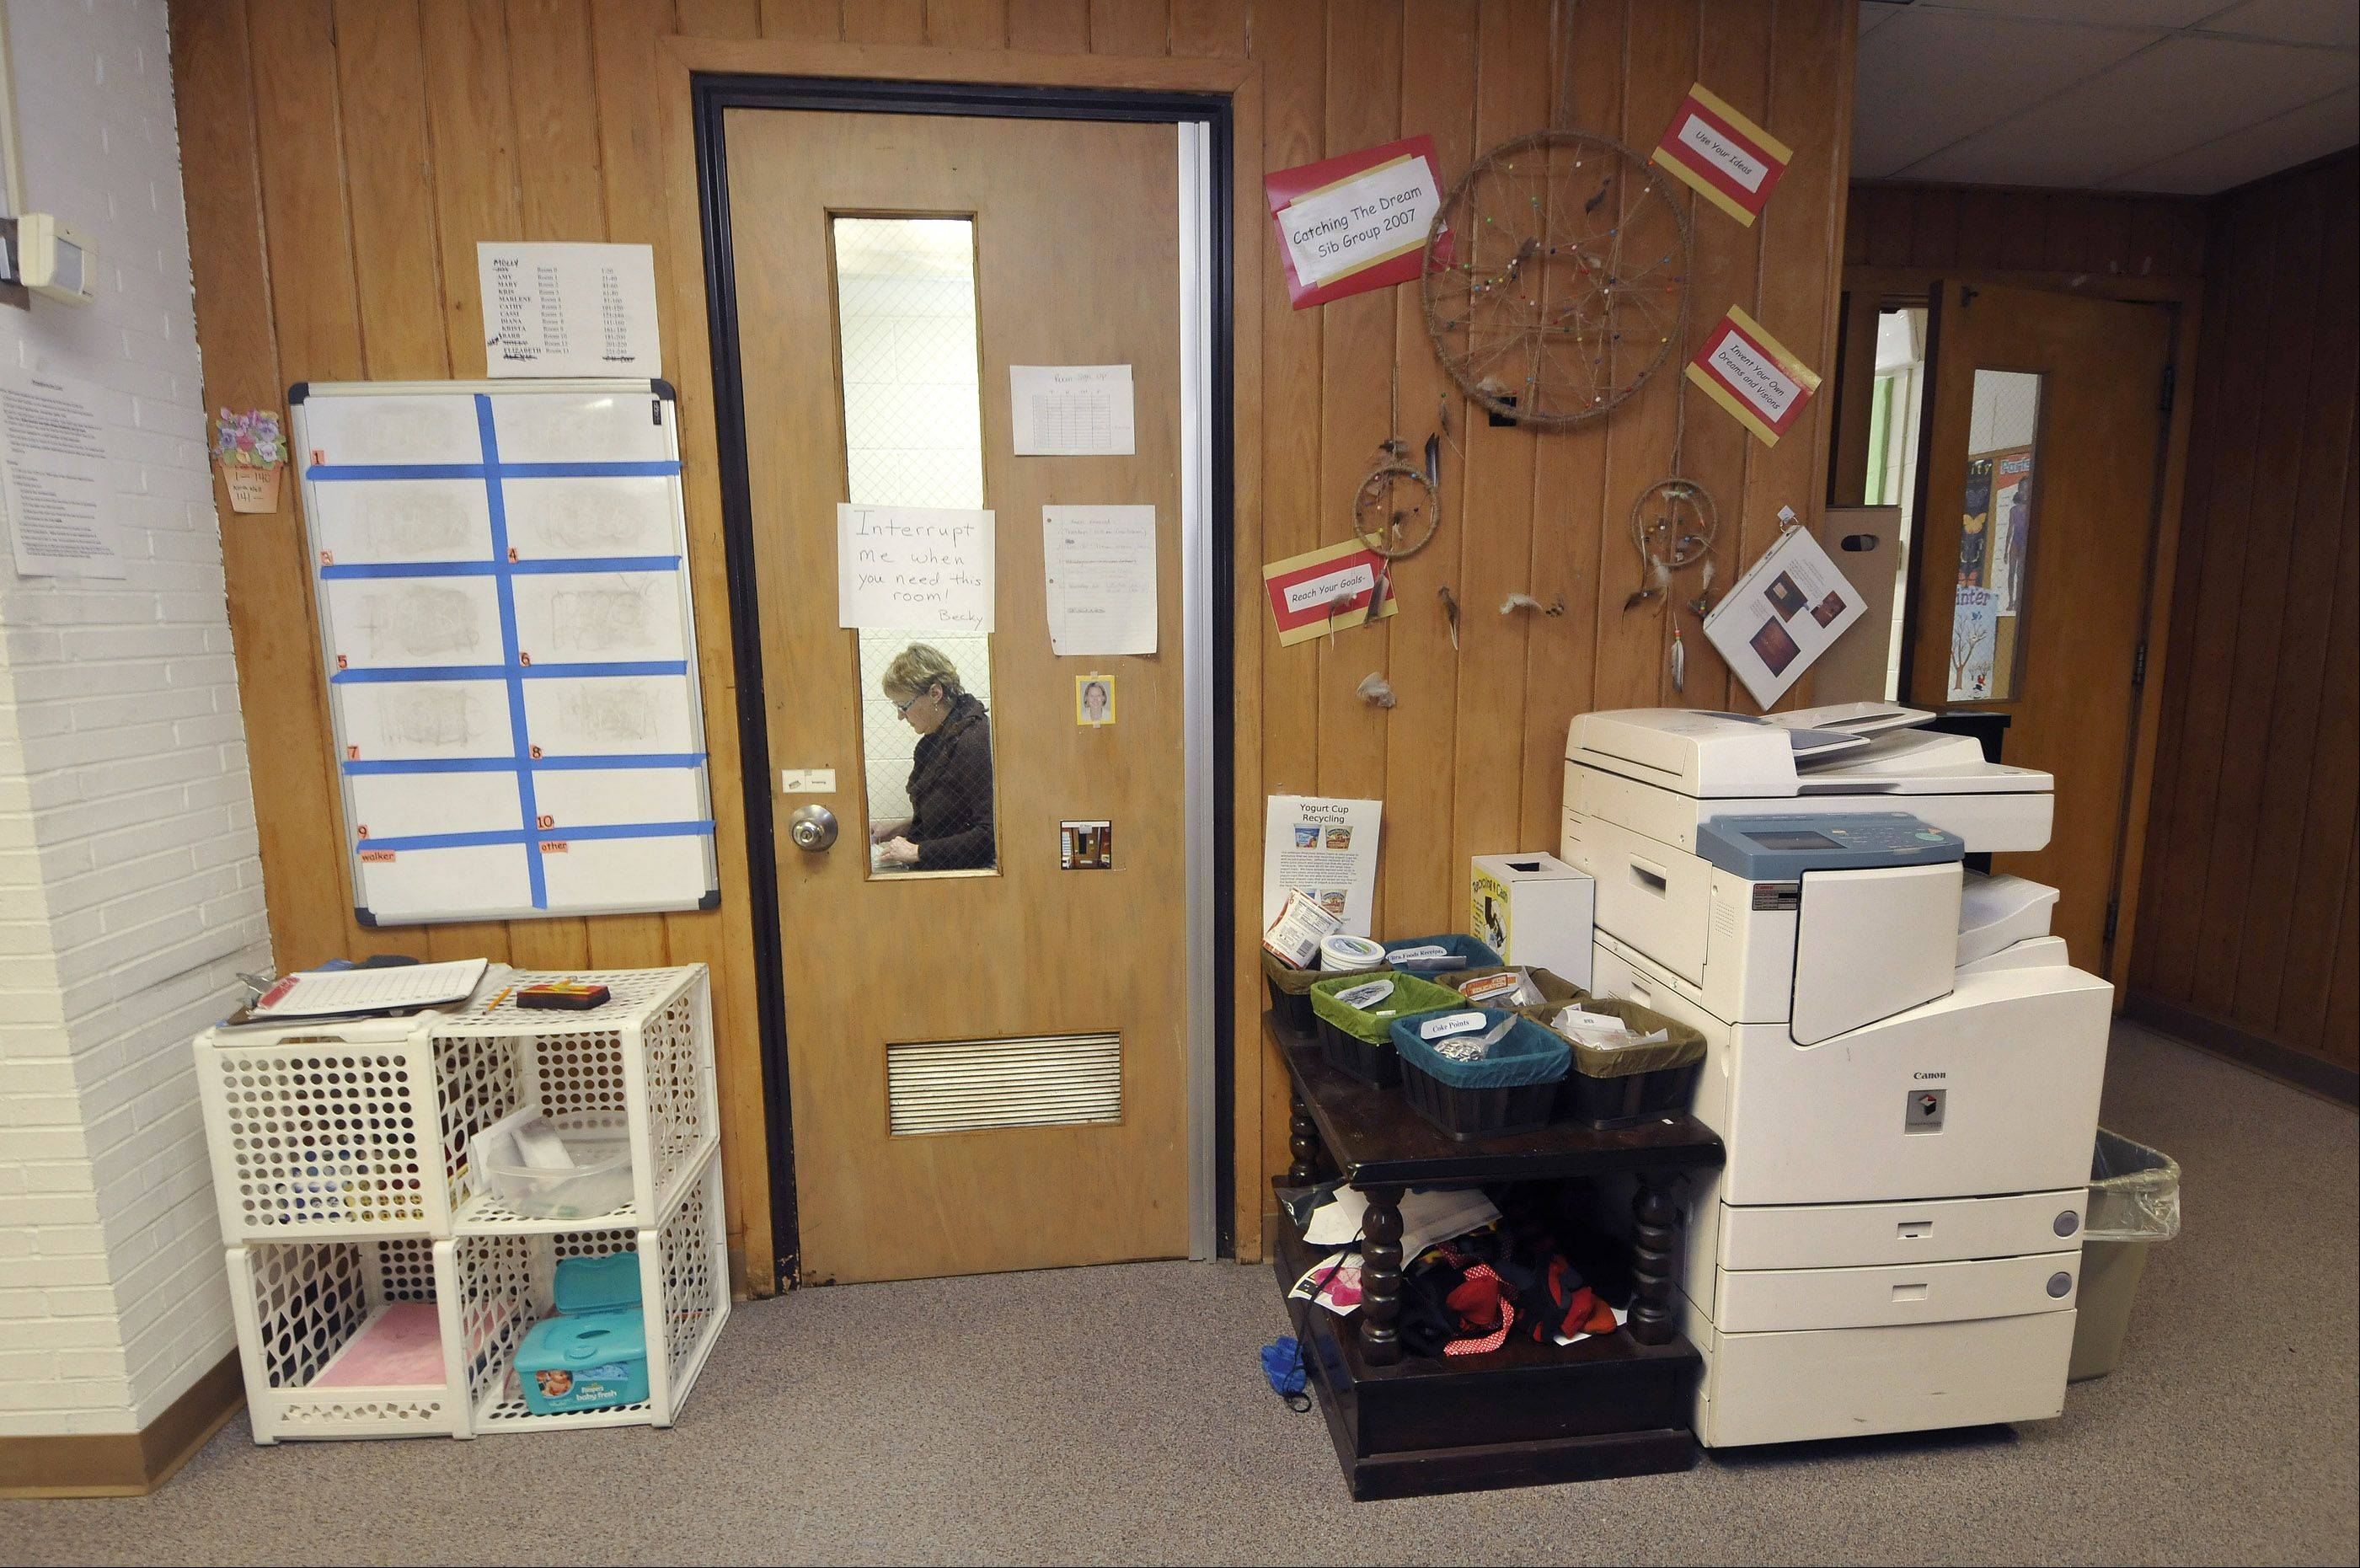 Wheaton Warrenville Unit District 200 officials say outdated facilities at the Jefferson Early Childhood Center in Wheaton force school psychologist Becky Rosenthal to meet with students in a former closet. A copy machine, meanwhile, is kept in the hallway because there isn't room for it elsewhere.